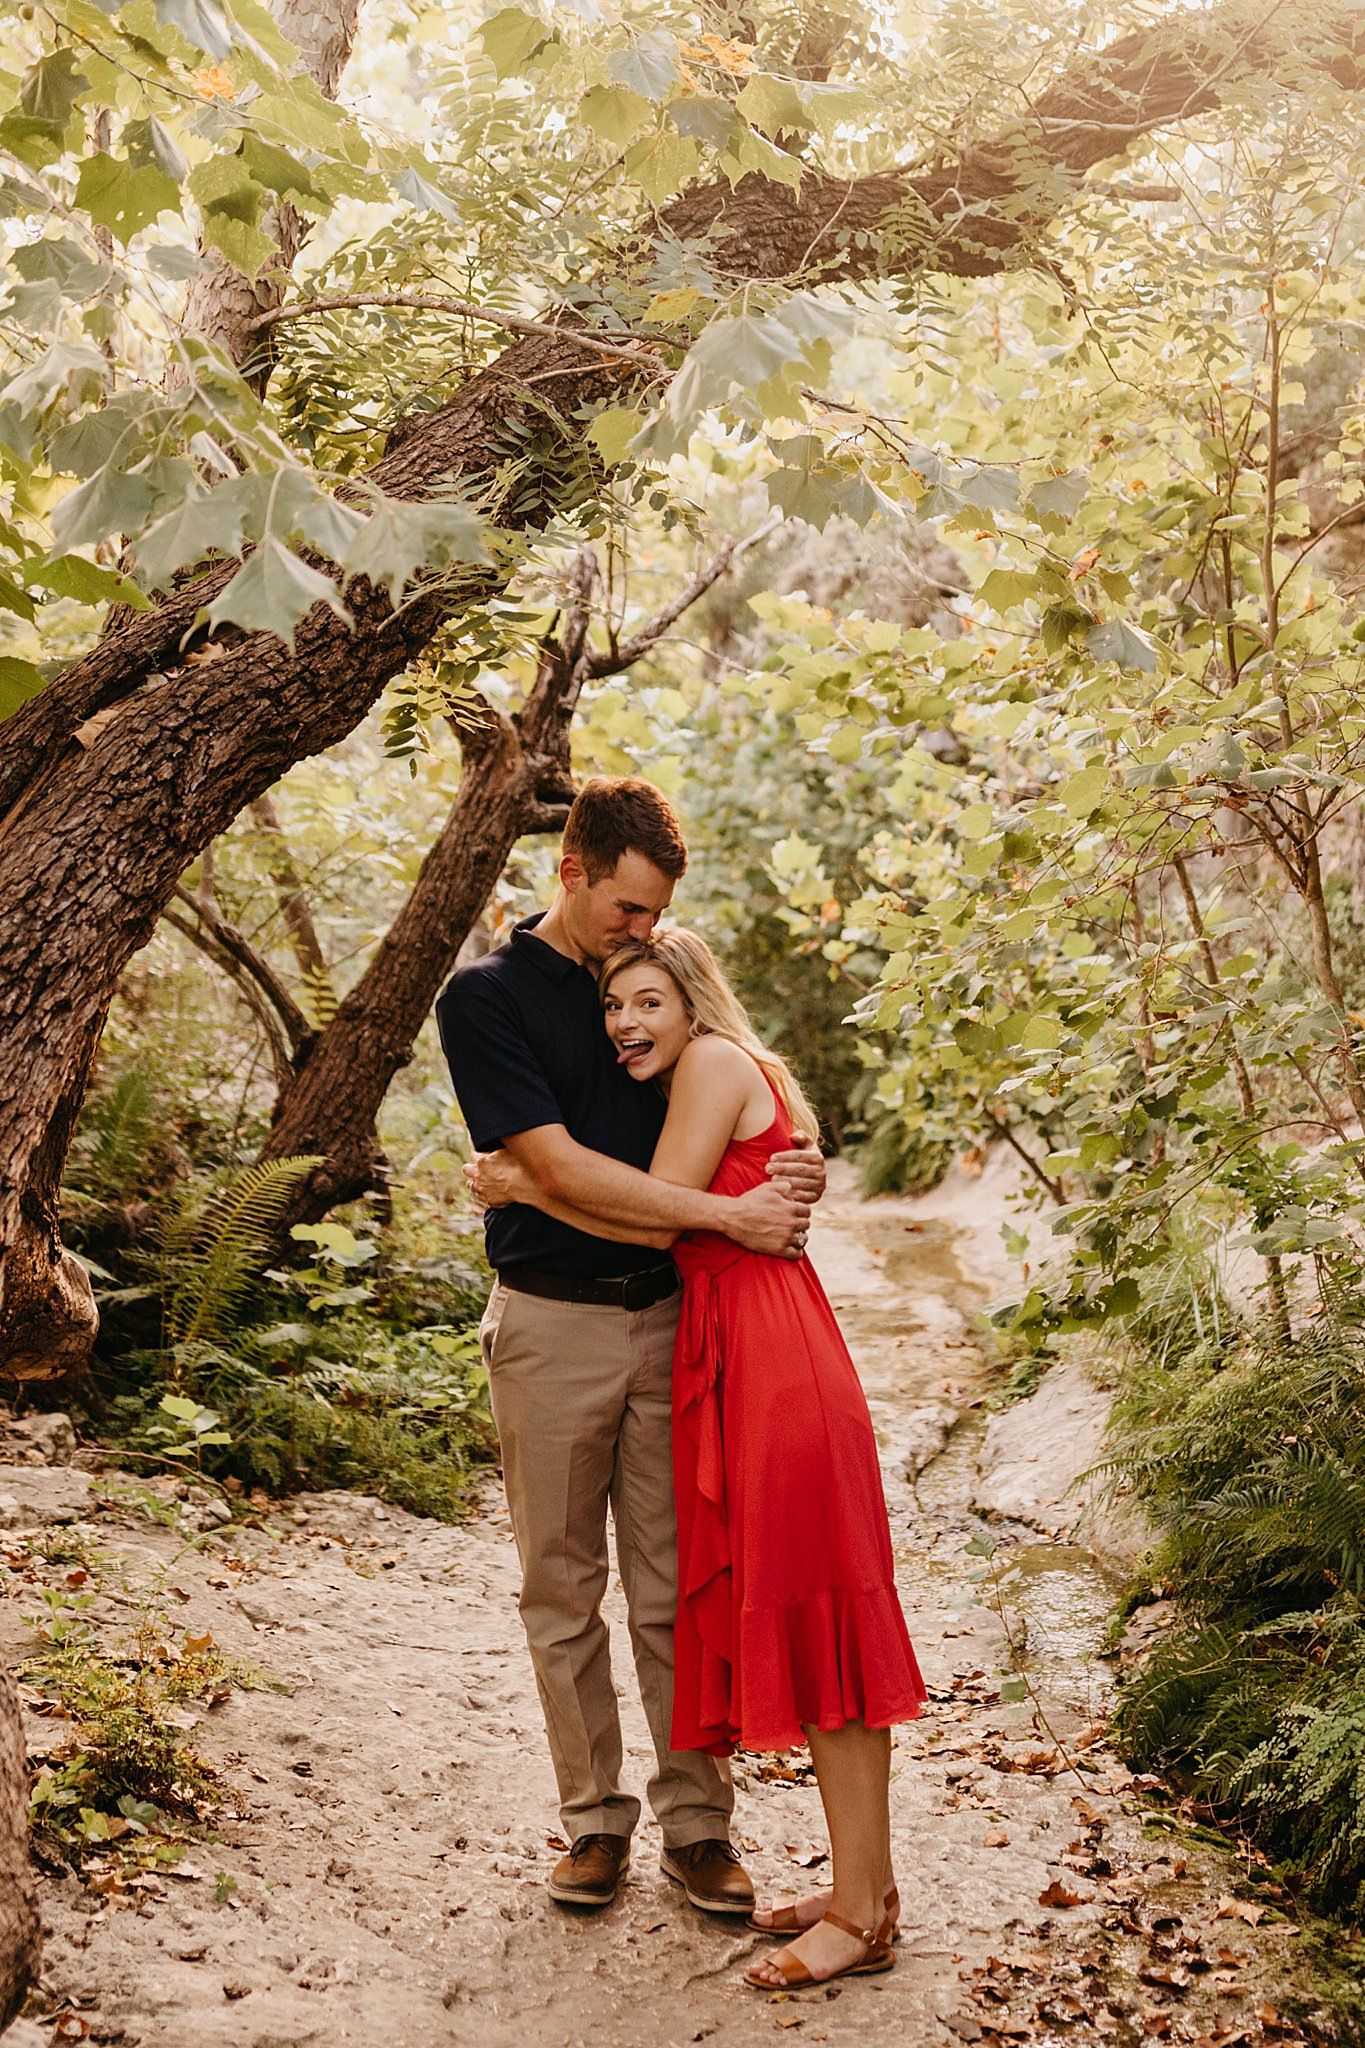 Wilderlove Co_Wedding Photographer_Dripping Springs Photography_Adventure Engagemenet_Rock Climbing Engagement_Hill Country Photographer_North Texas Photographer_0017.jpg